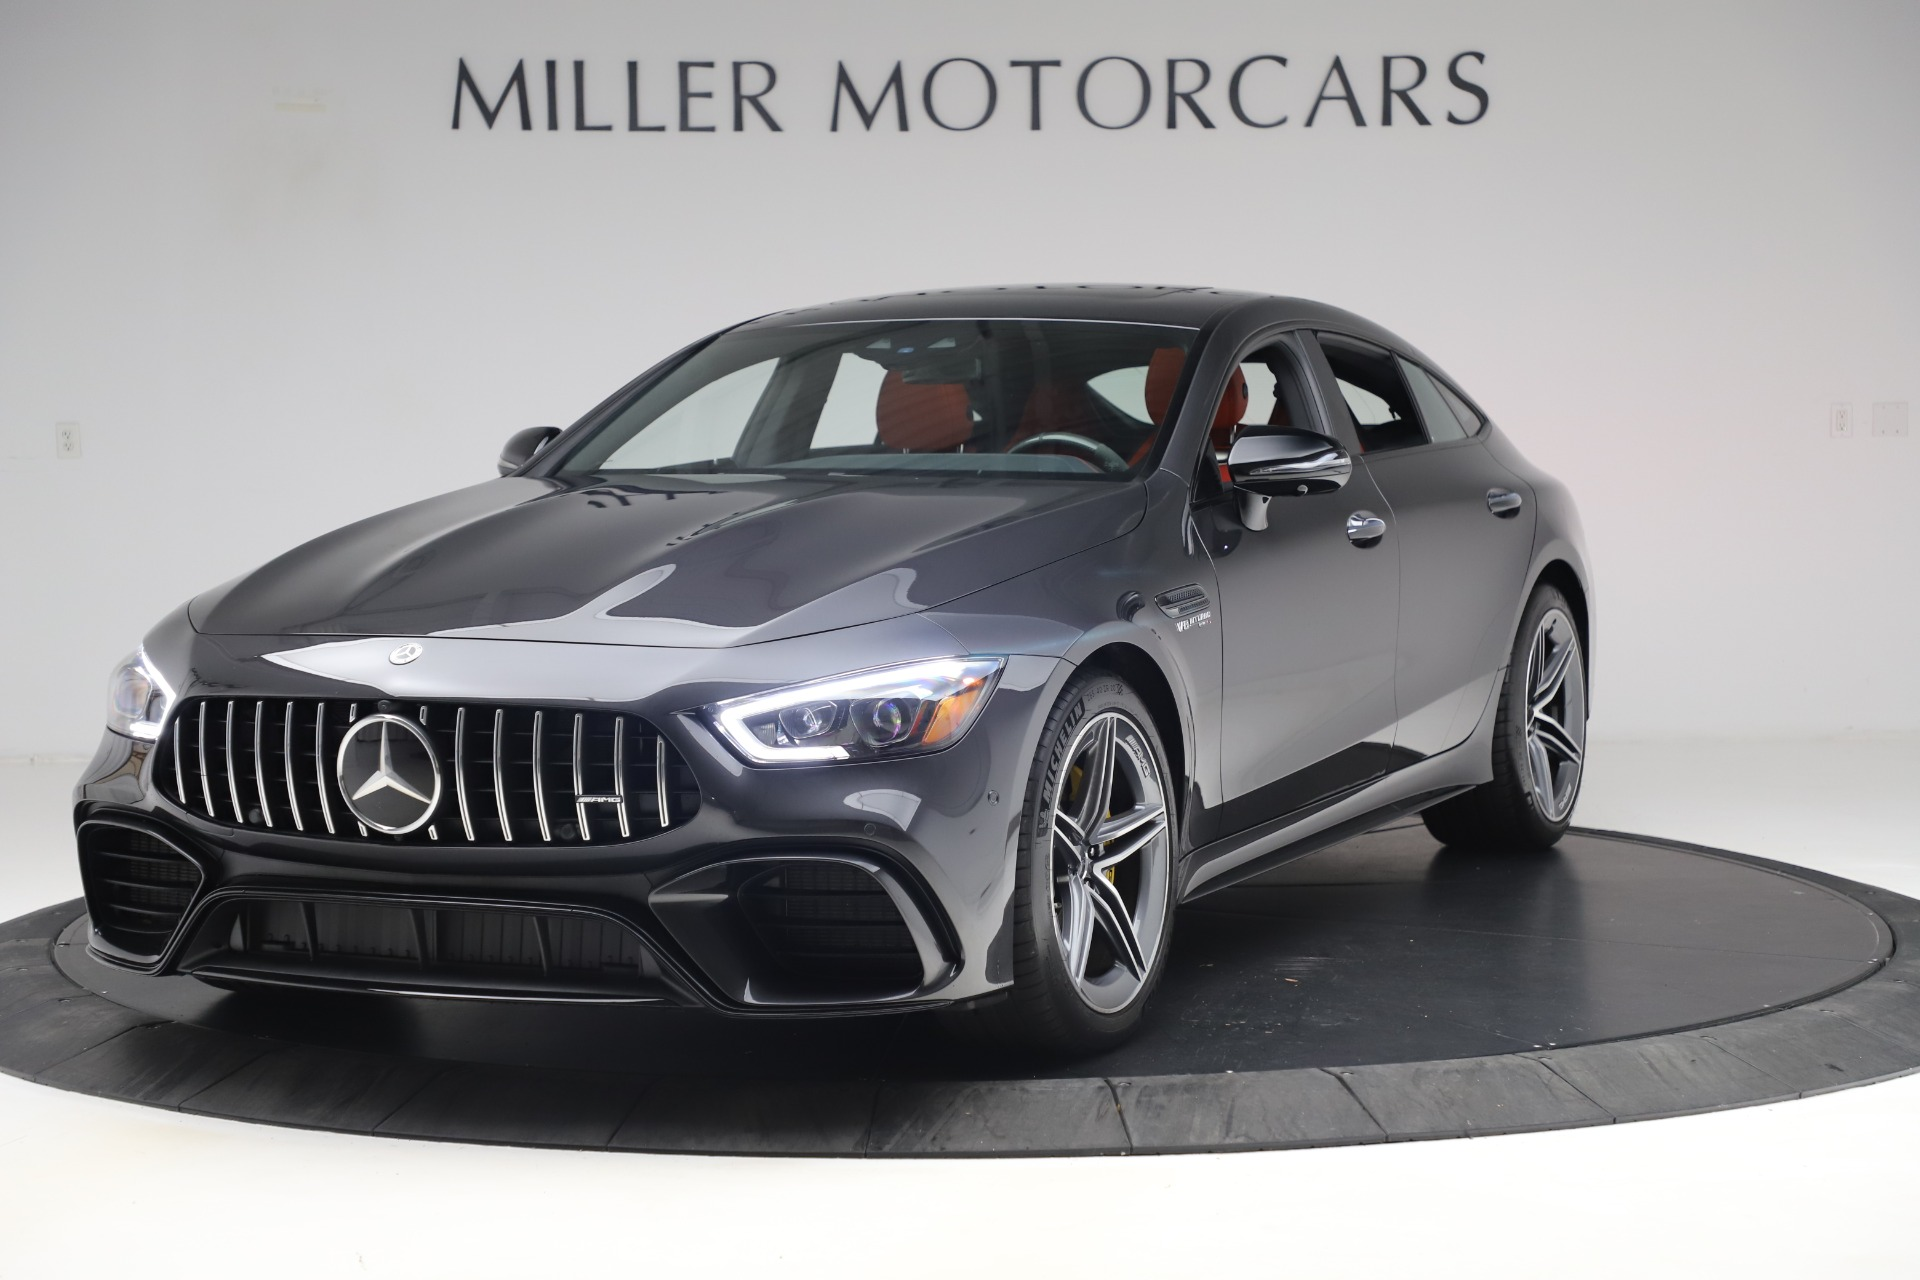 Pre Owned 2019 Mercedes Benz Amg Gt 63 S For Sale 159 900 Miller Motorcars Stock 7674